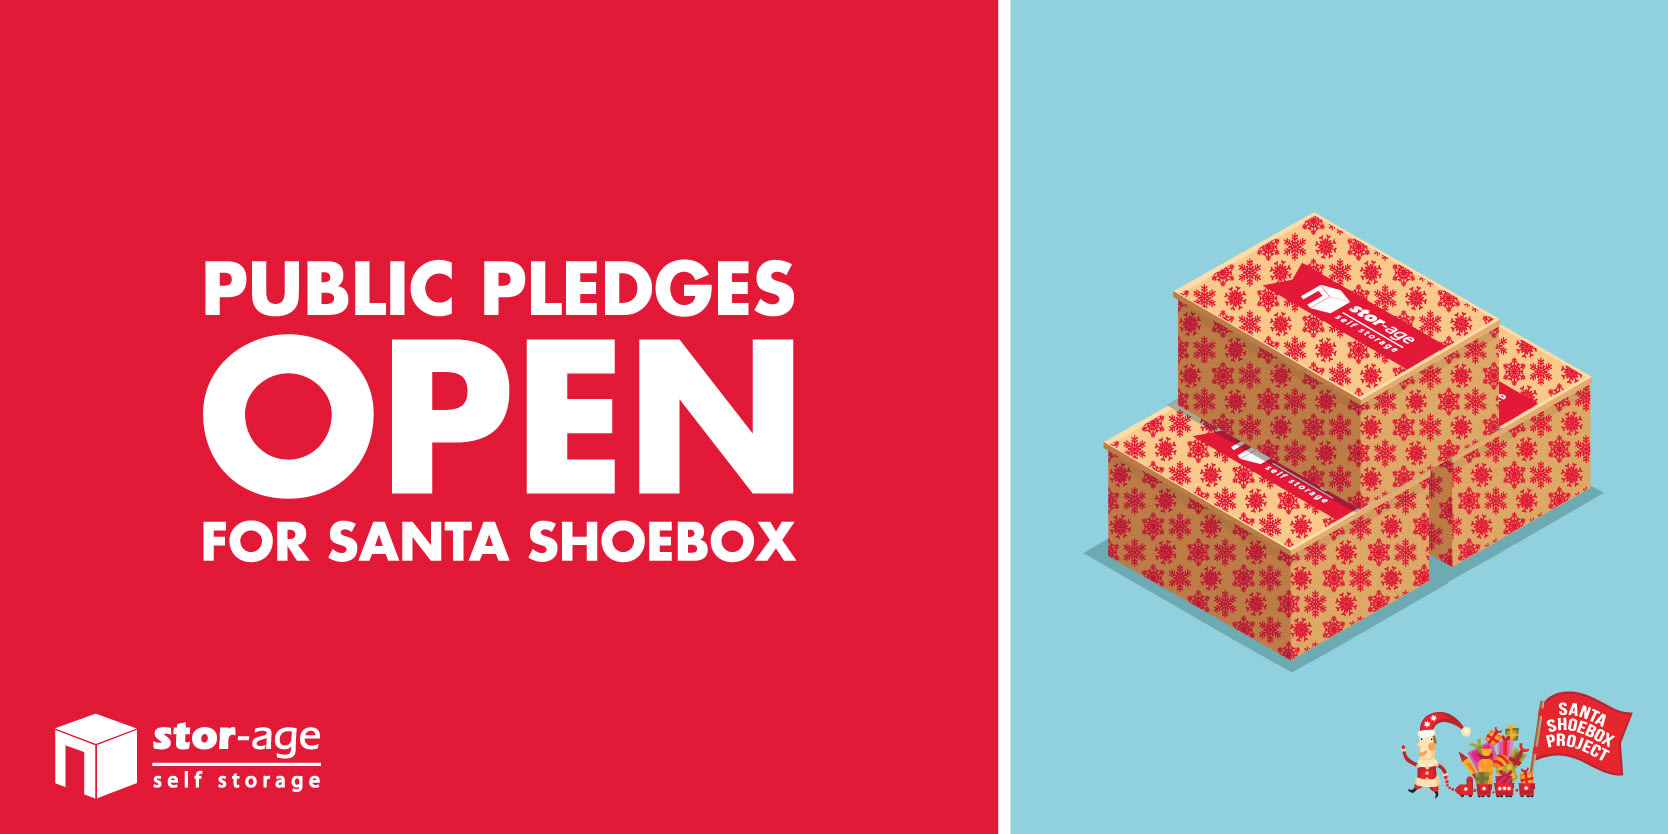 Public pledging official opens for the Santa Shoebox Project